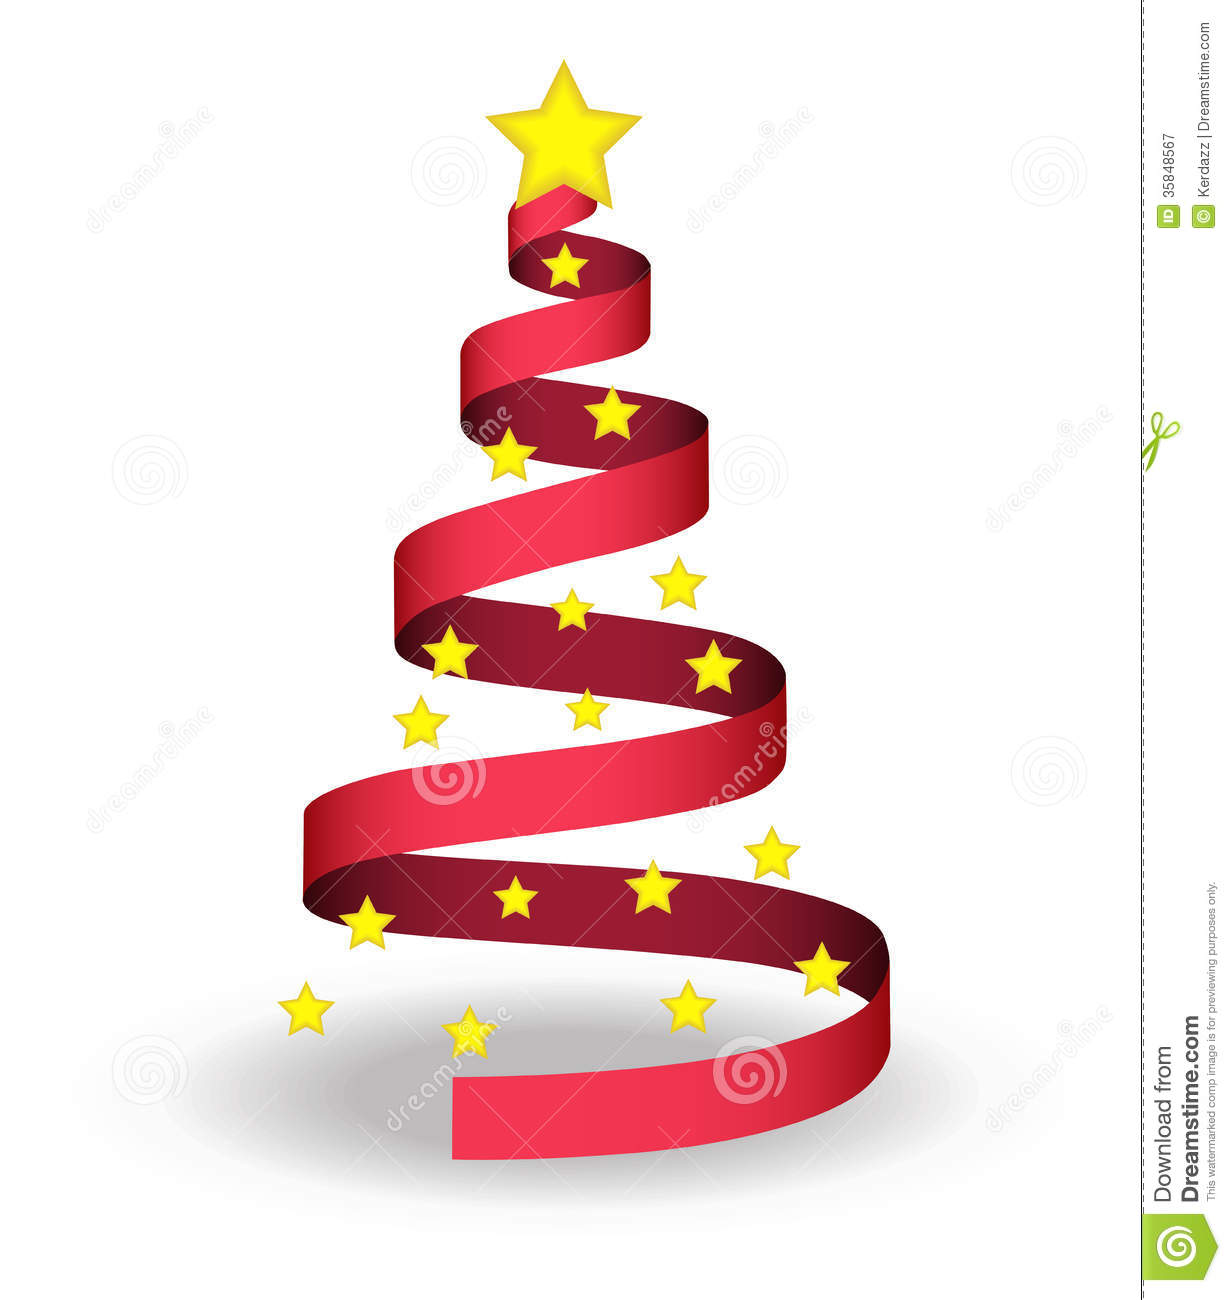 Christmas tree royalty free stock photography image for Red ribbon around tree